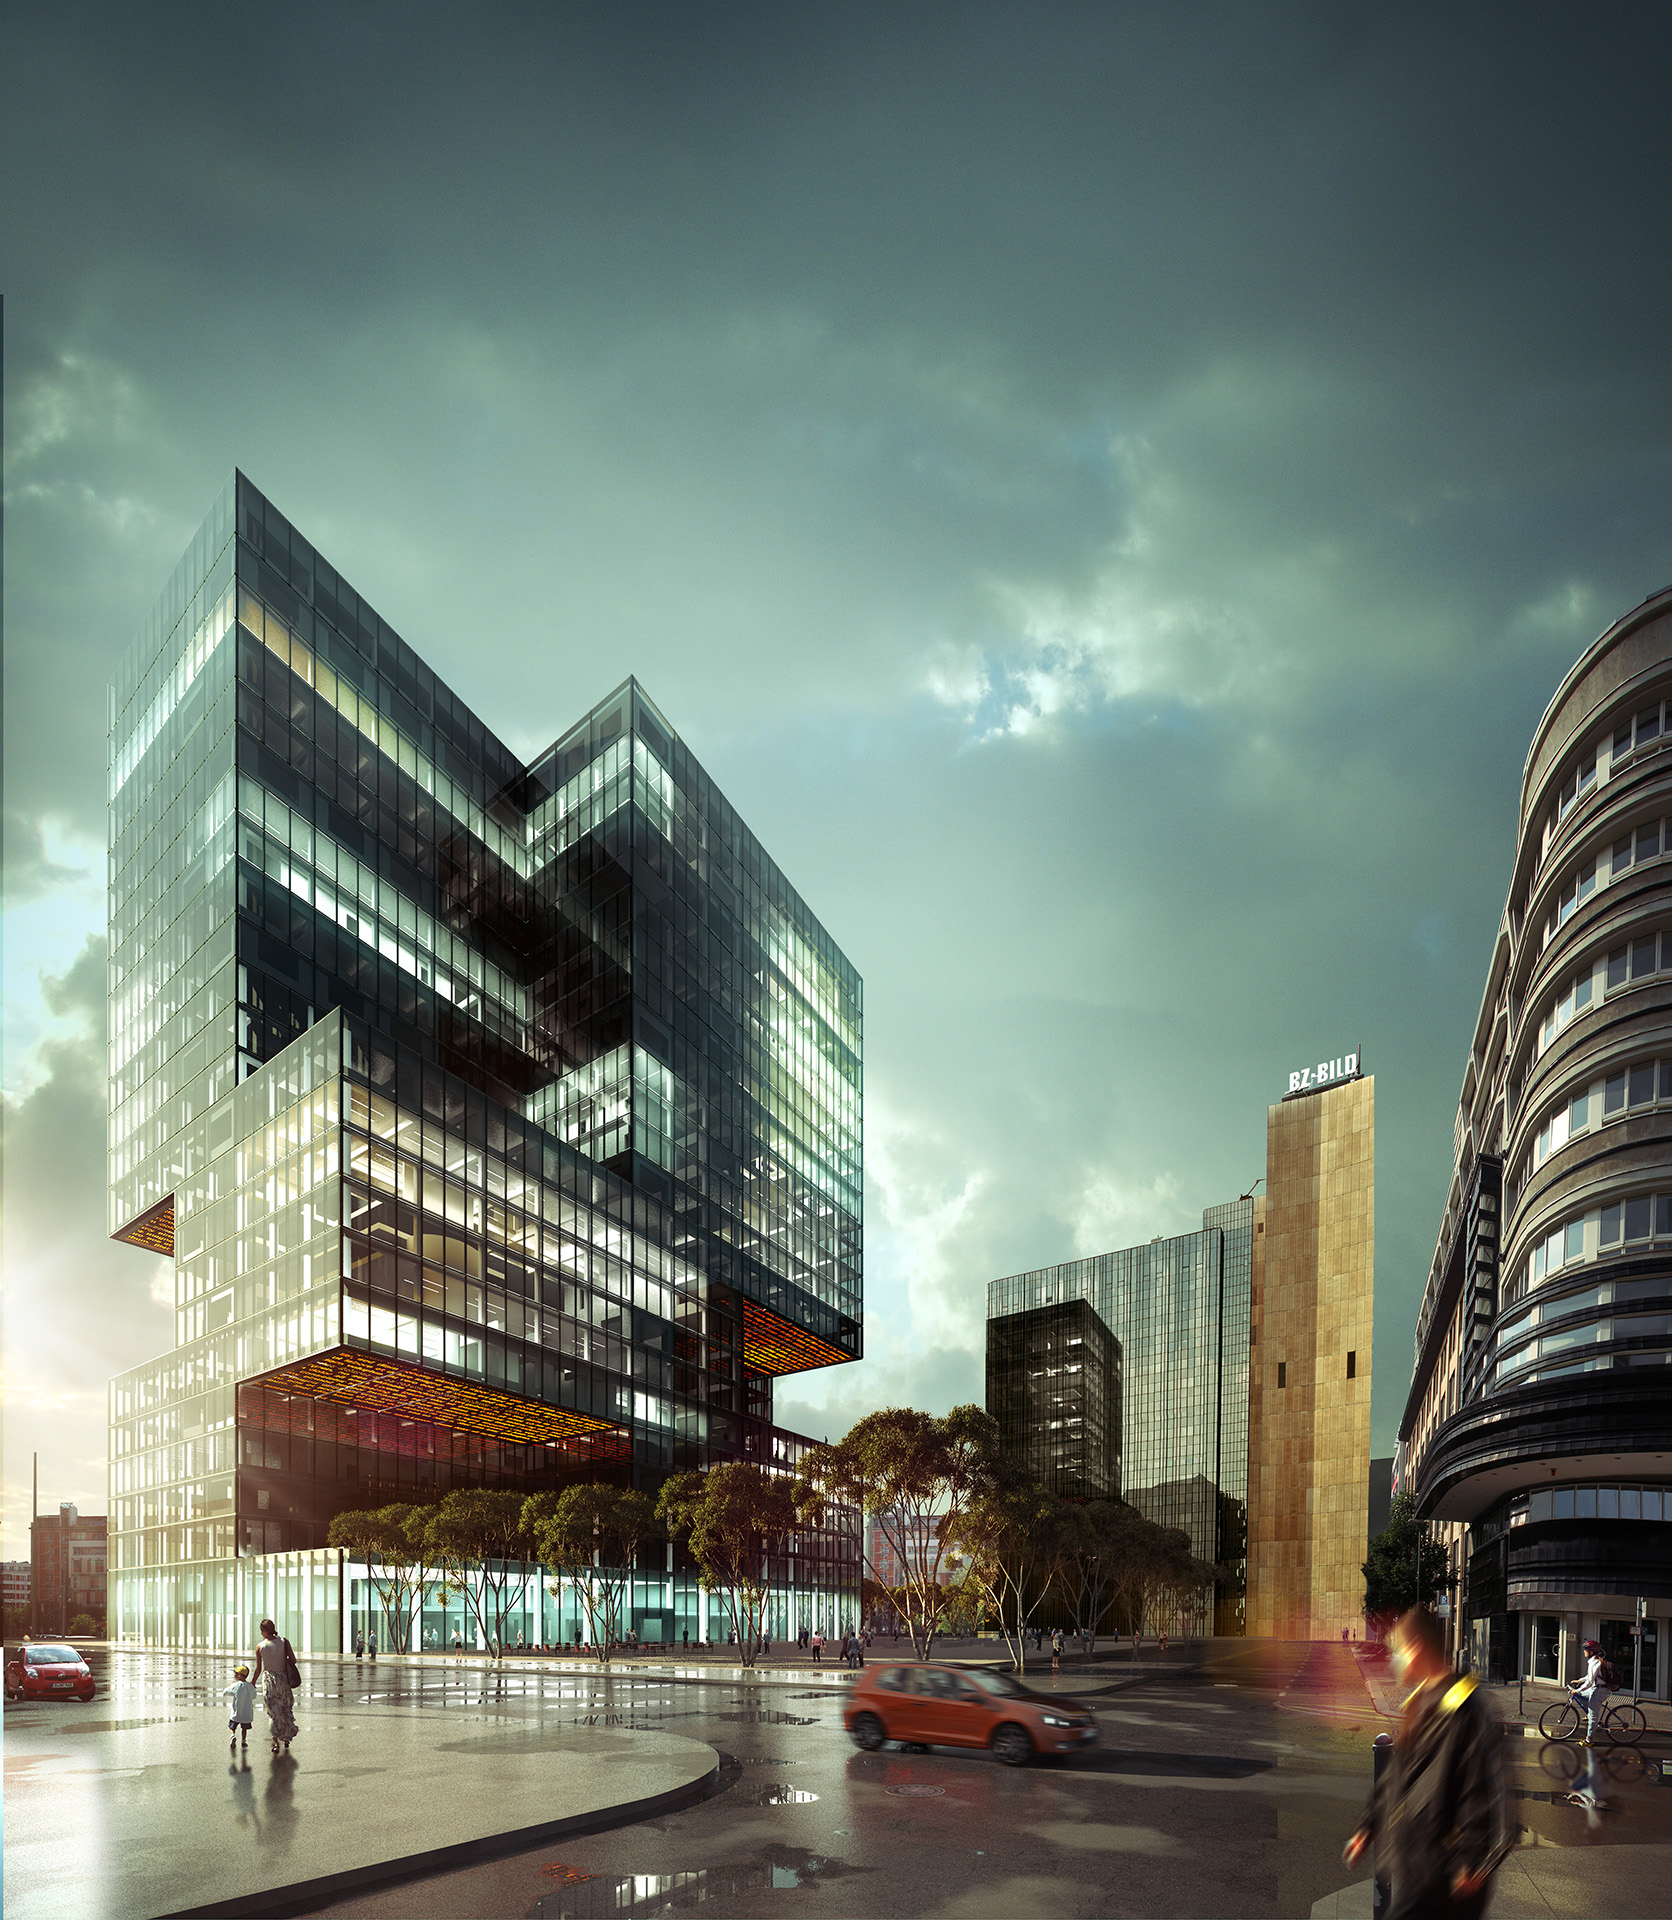 Berlin highriser axel springer media group xoio for Architektur renderings